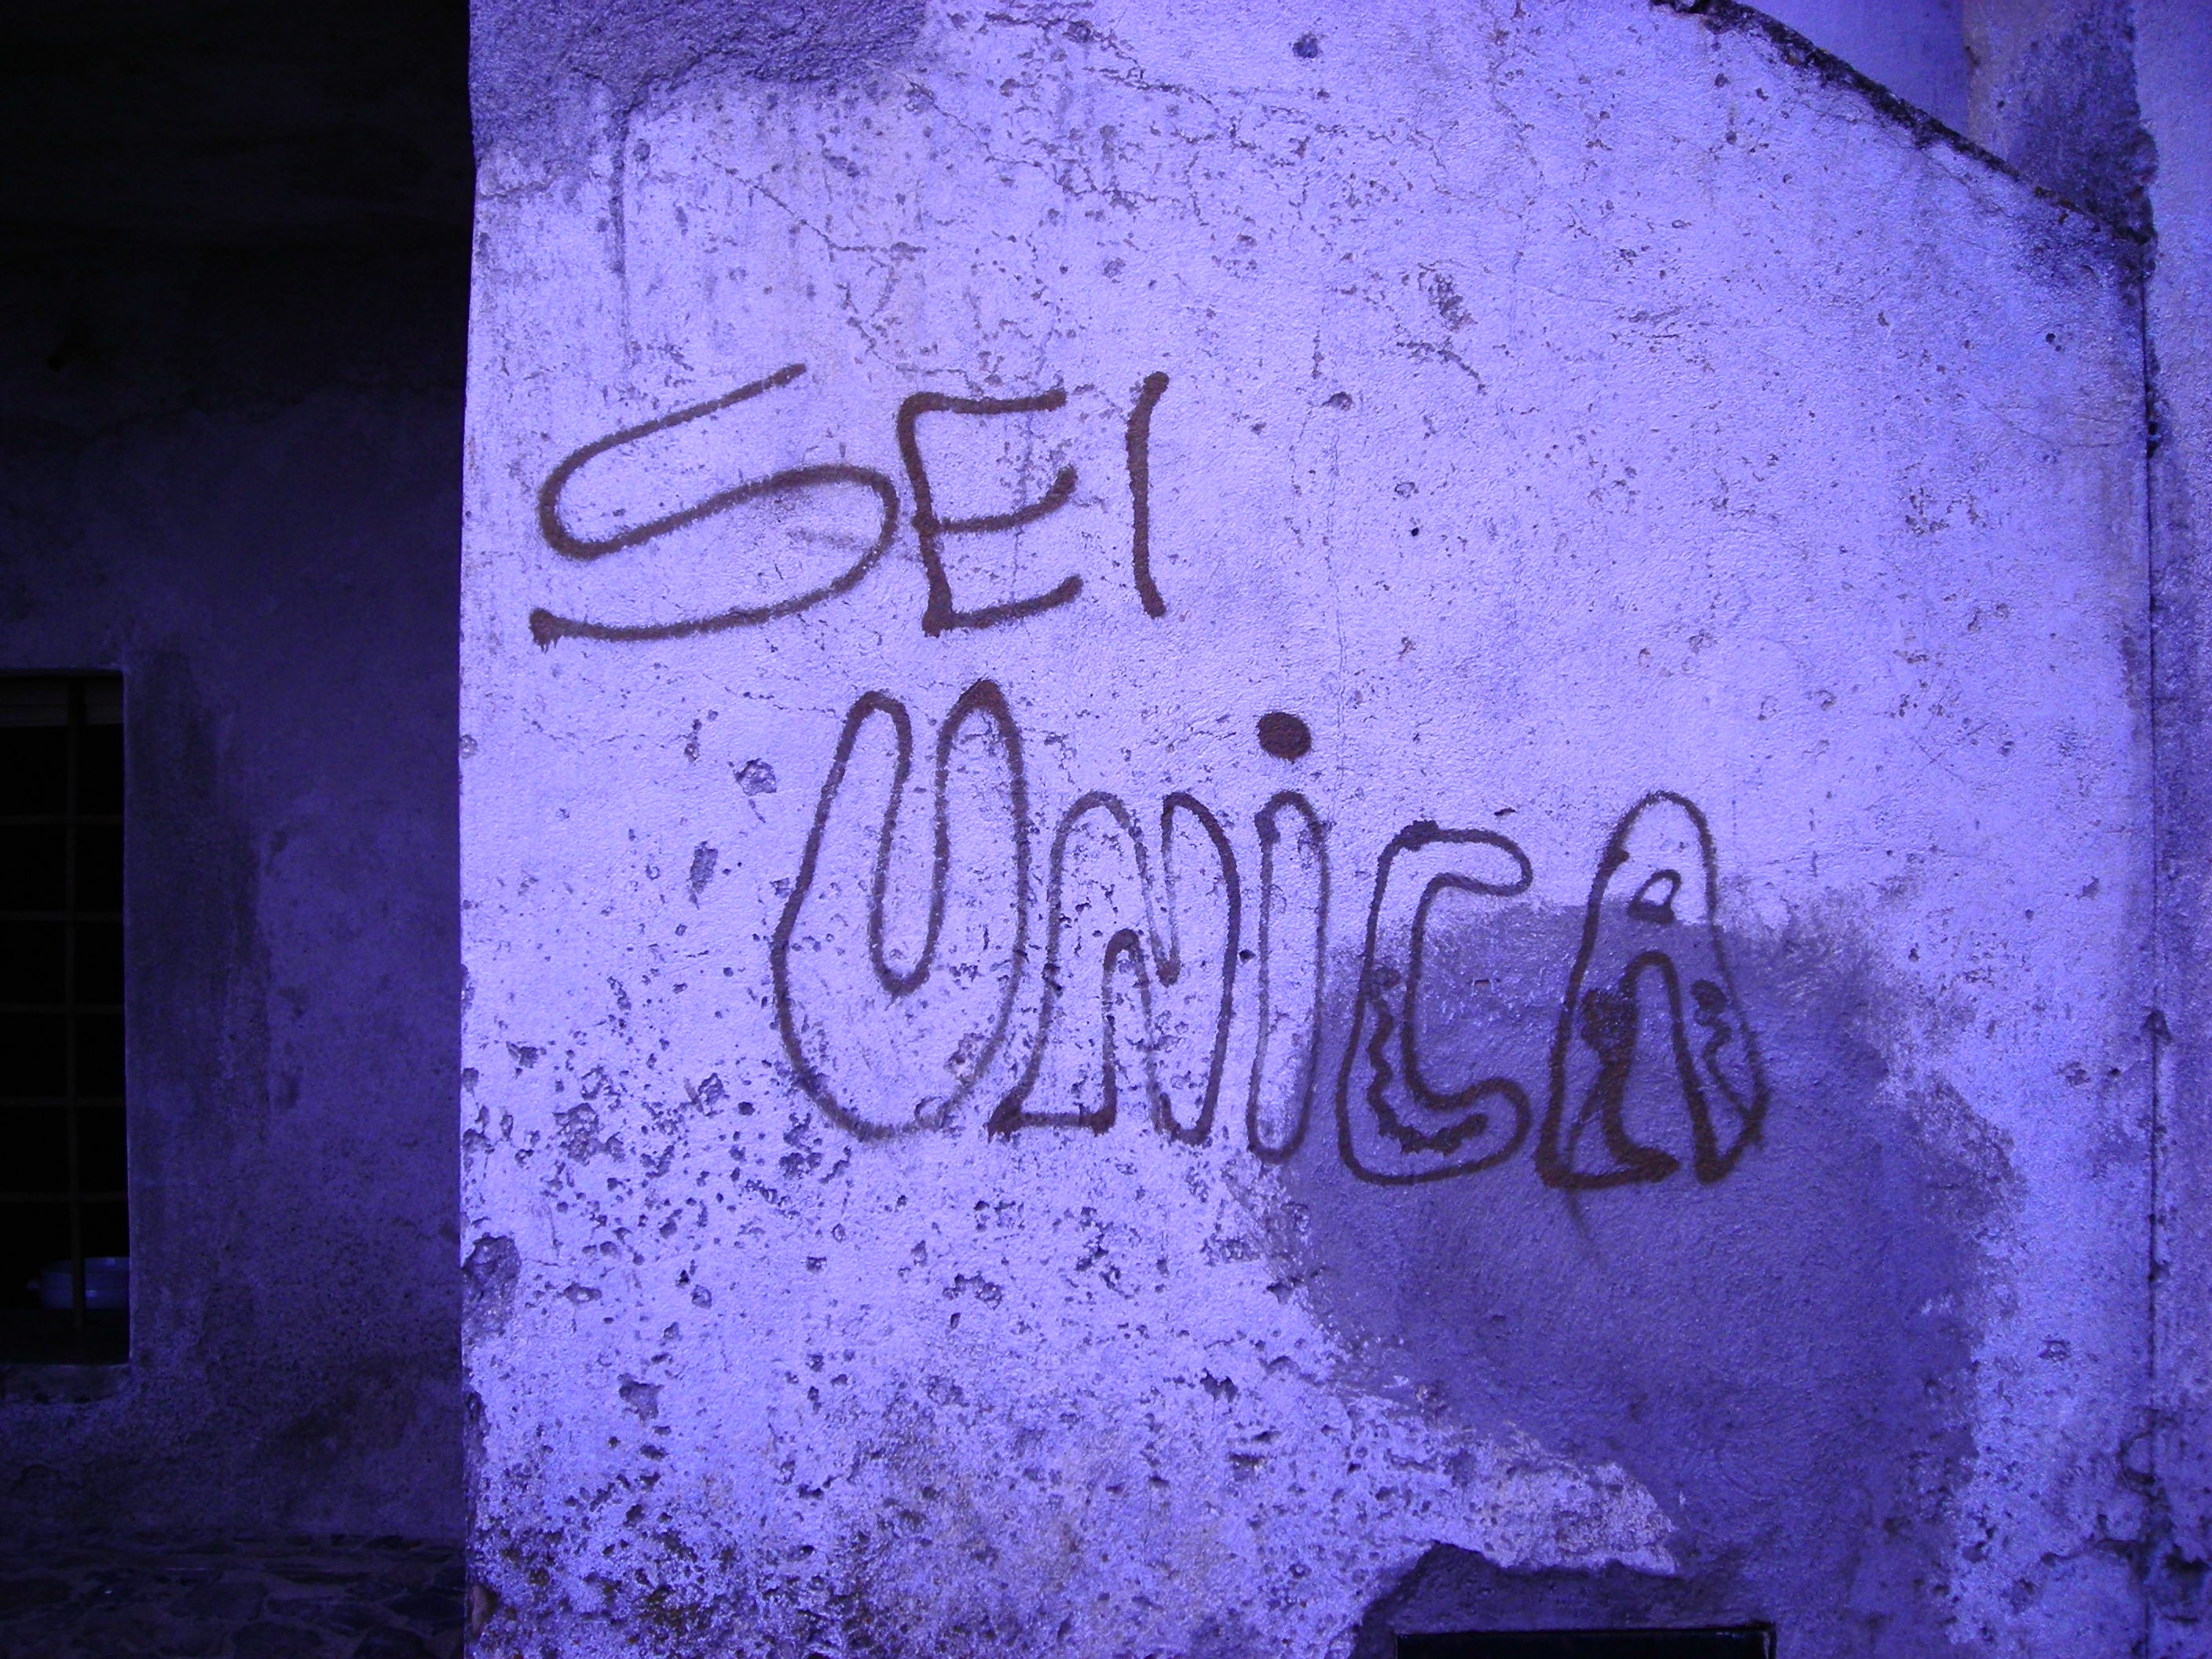 Graffiti in Italy is not gang related.  This one says,